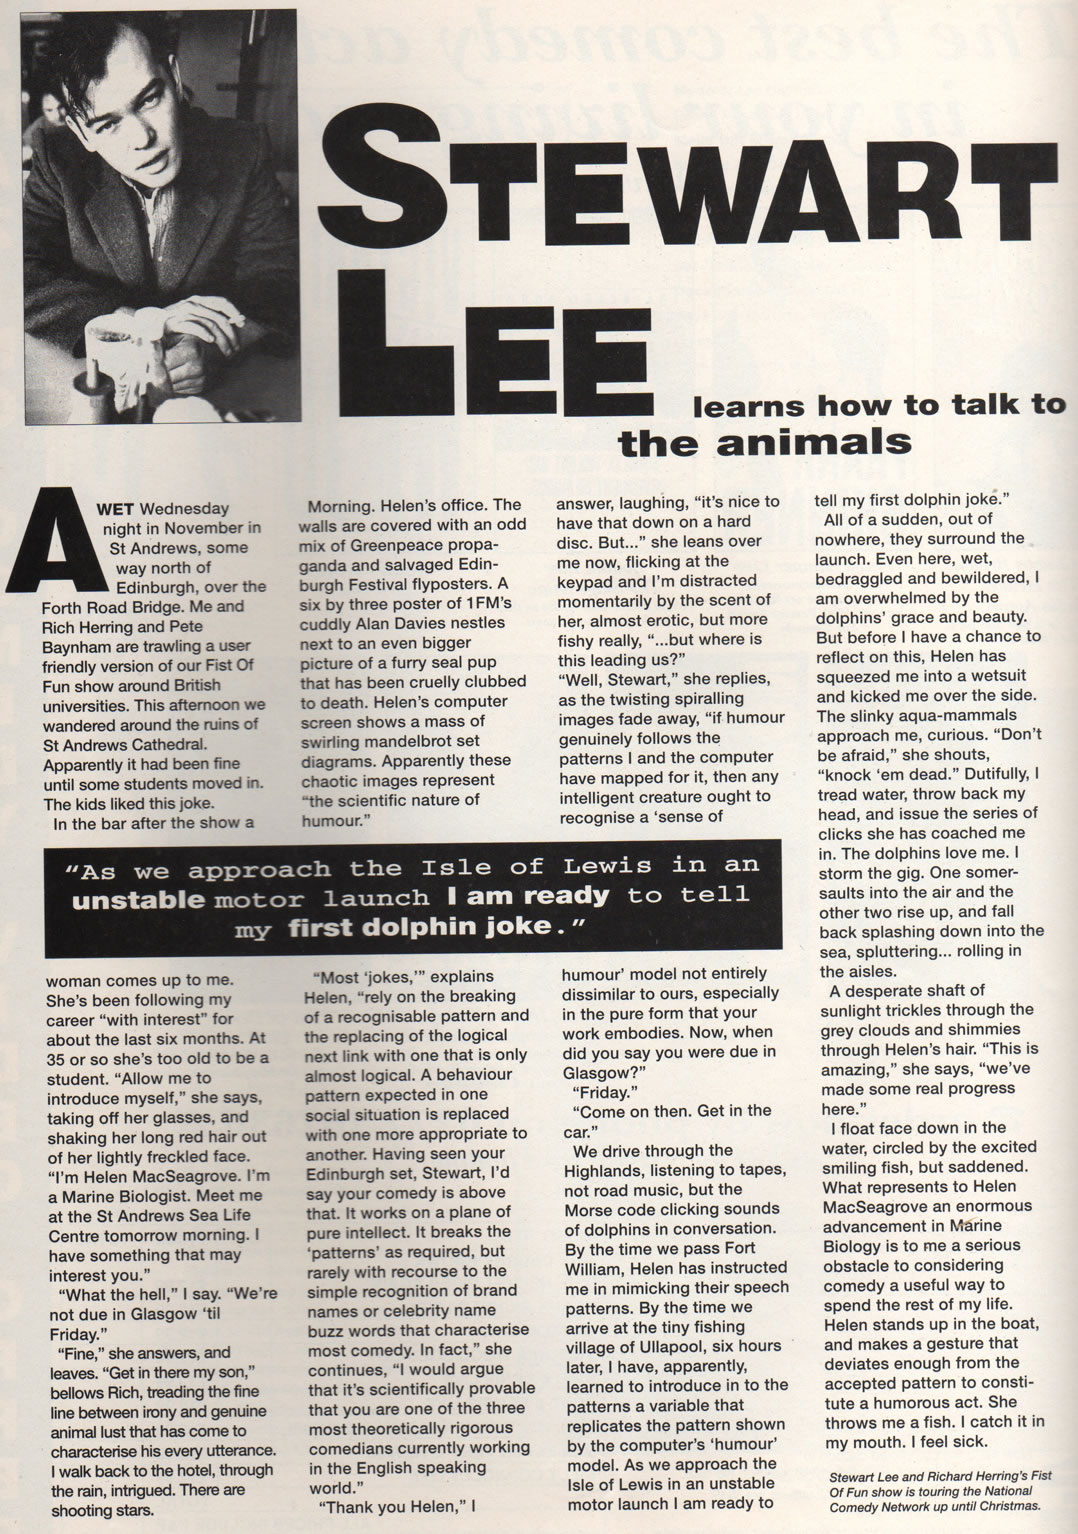 Stewart Lee learns how to talk to the animals